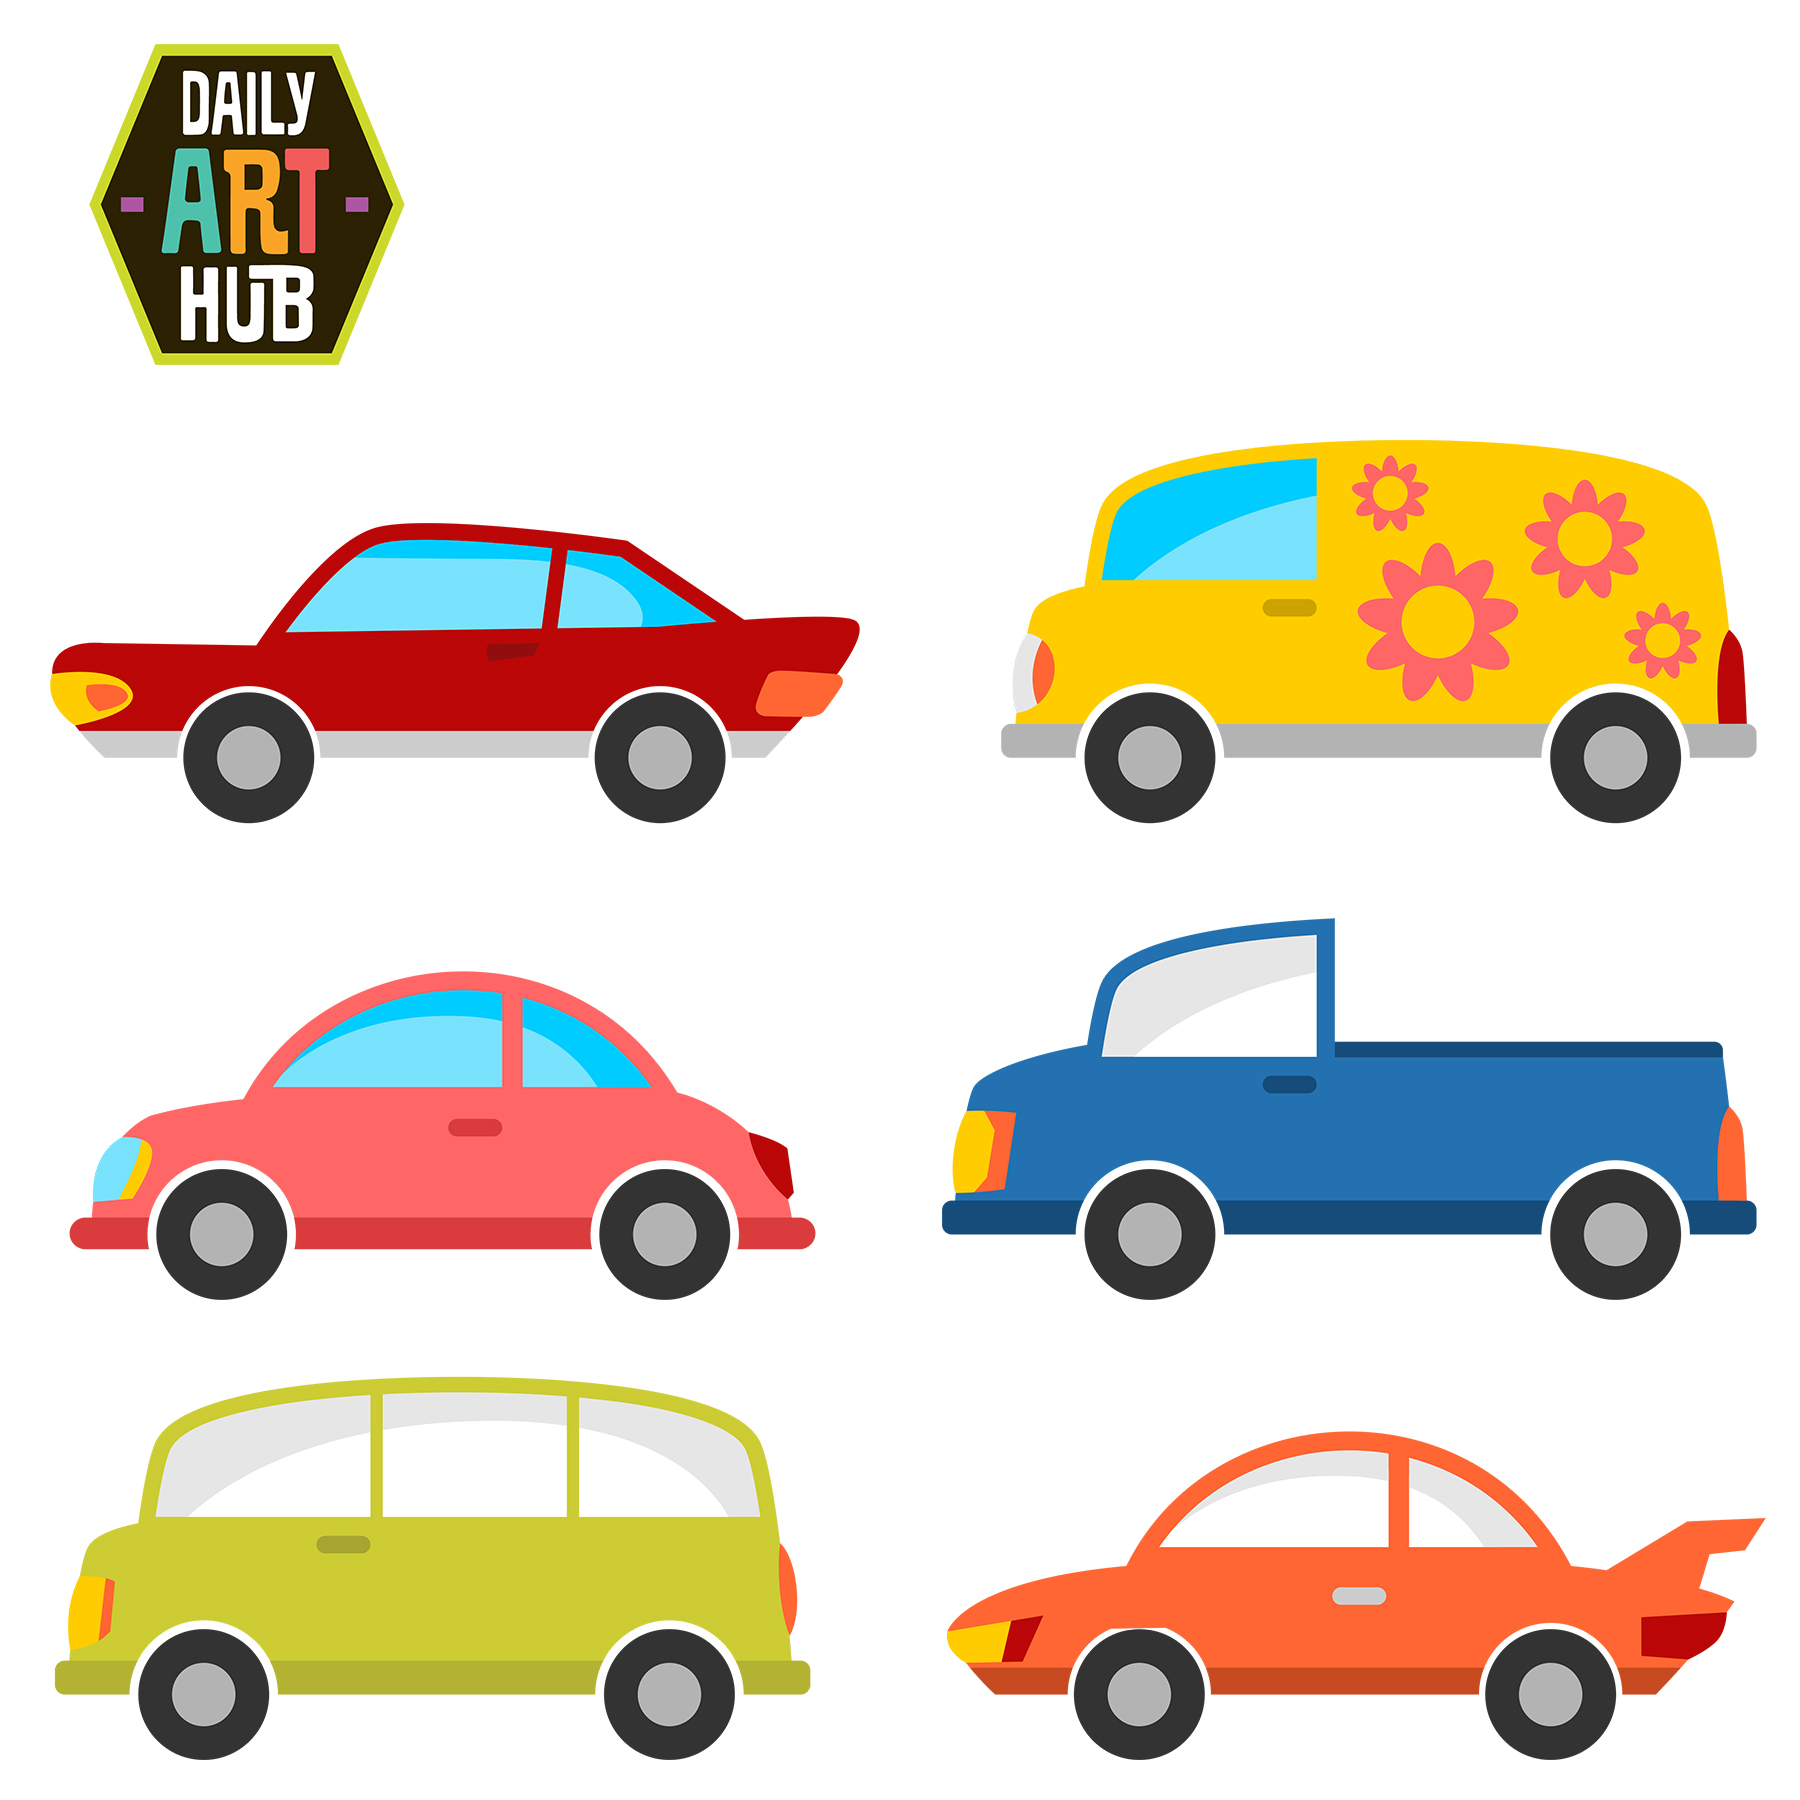 cars cute clipart clip vehicles transportation vehicle cliparts collection line everyday transport hub daily emergency library getdrawings clipartmag automobile tags